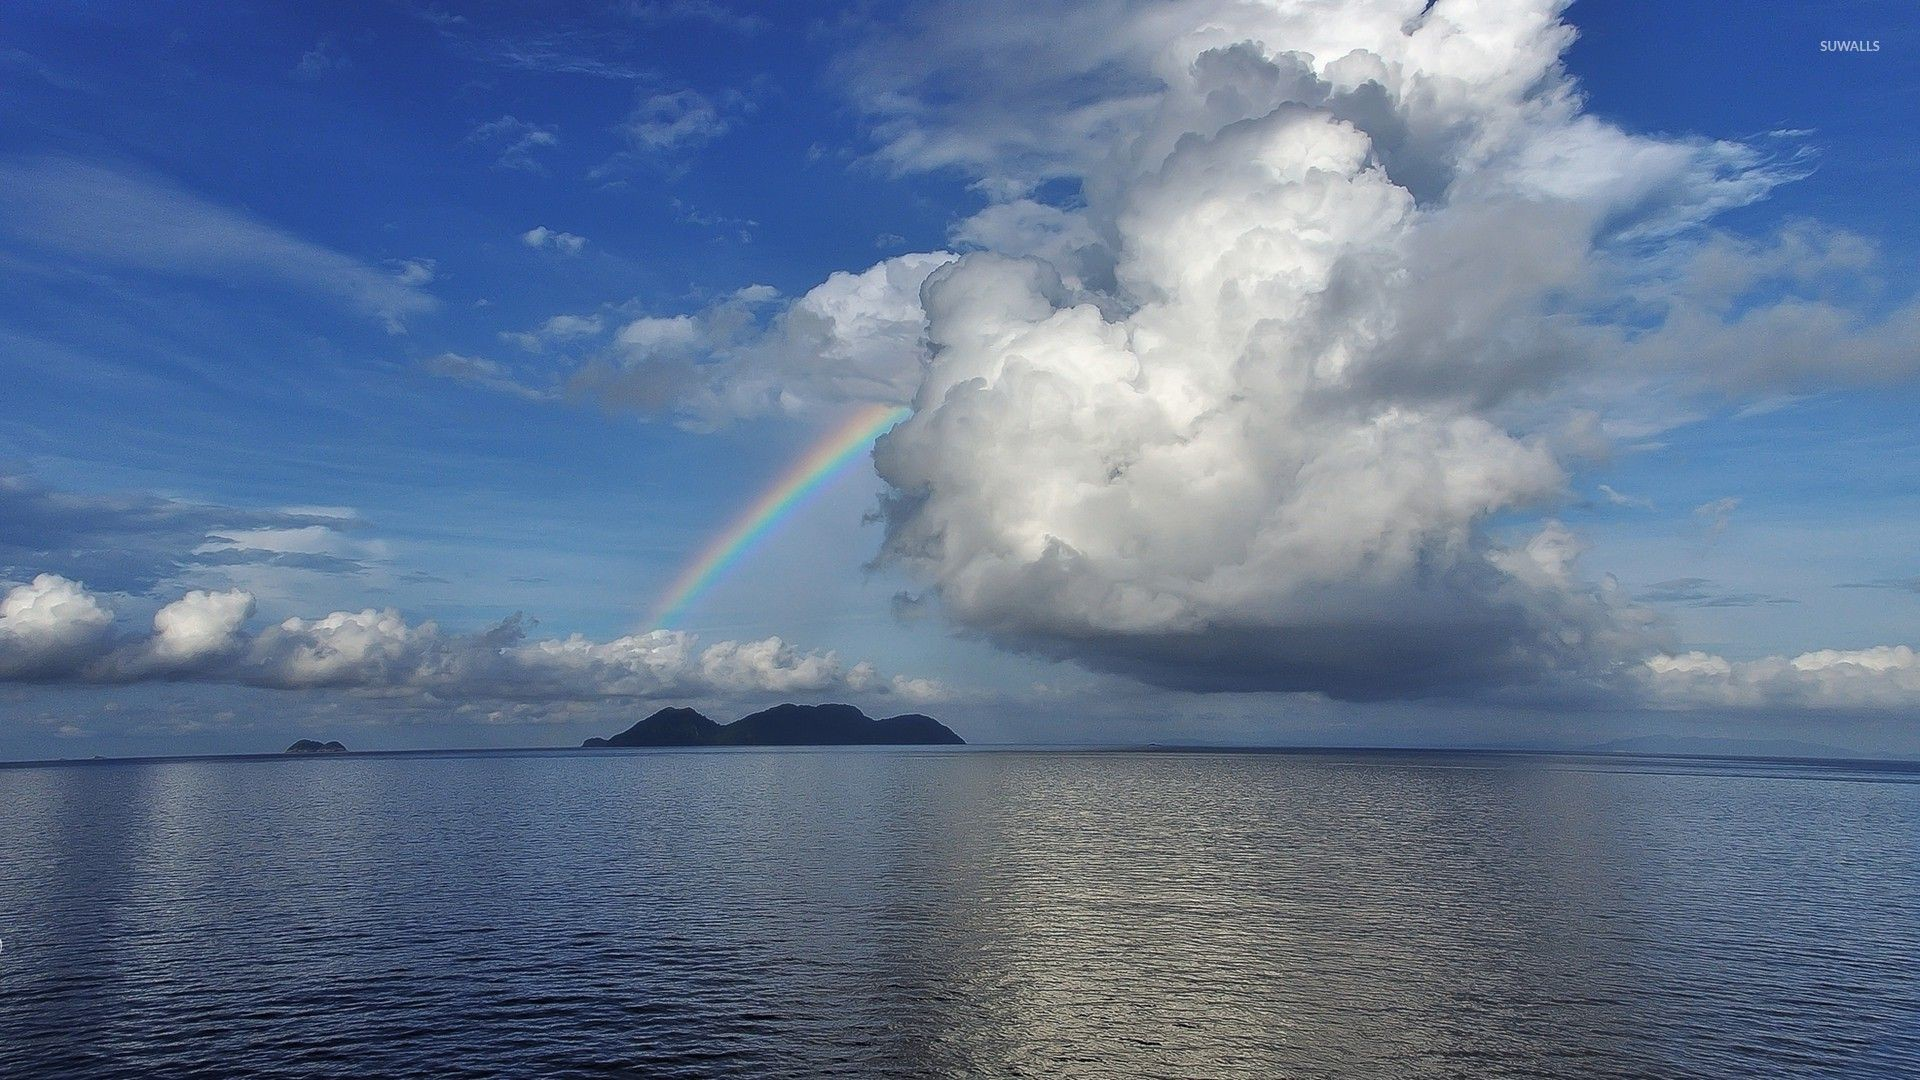 1920x1080 Rainbow in the middle of the ocean wallpaper  jpg